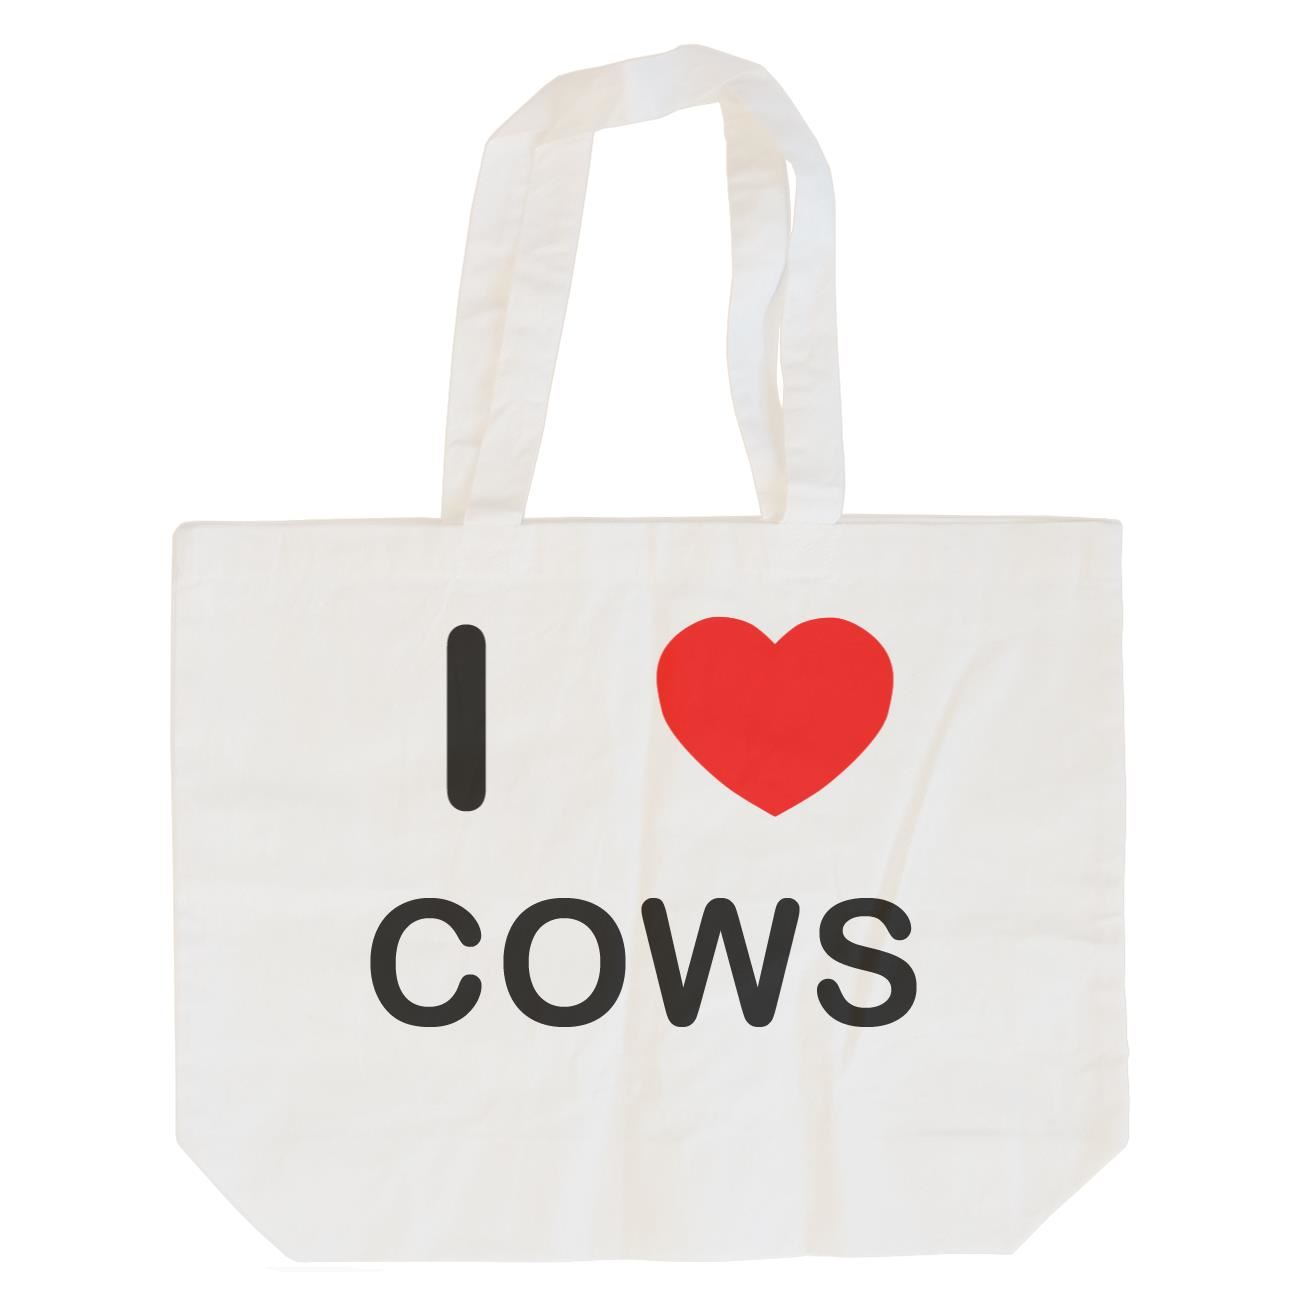 I Love Cows - Cotton Bag | Size choice Tote, Shopper or Sling